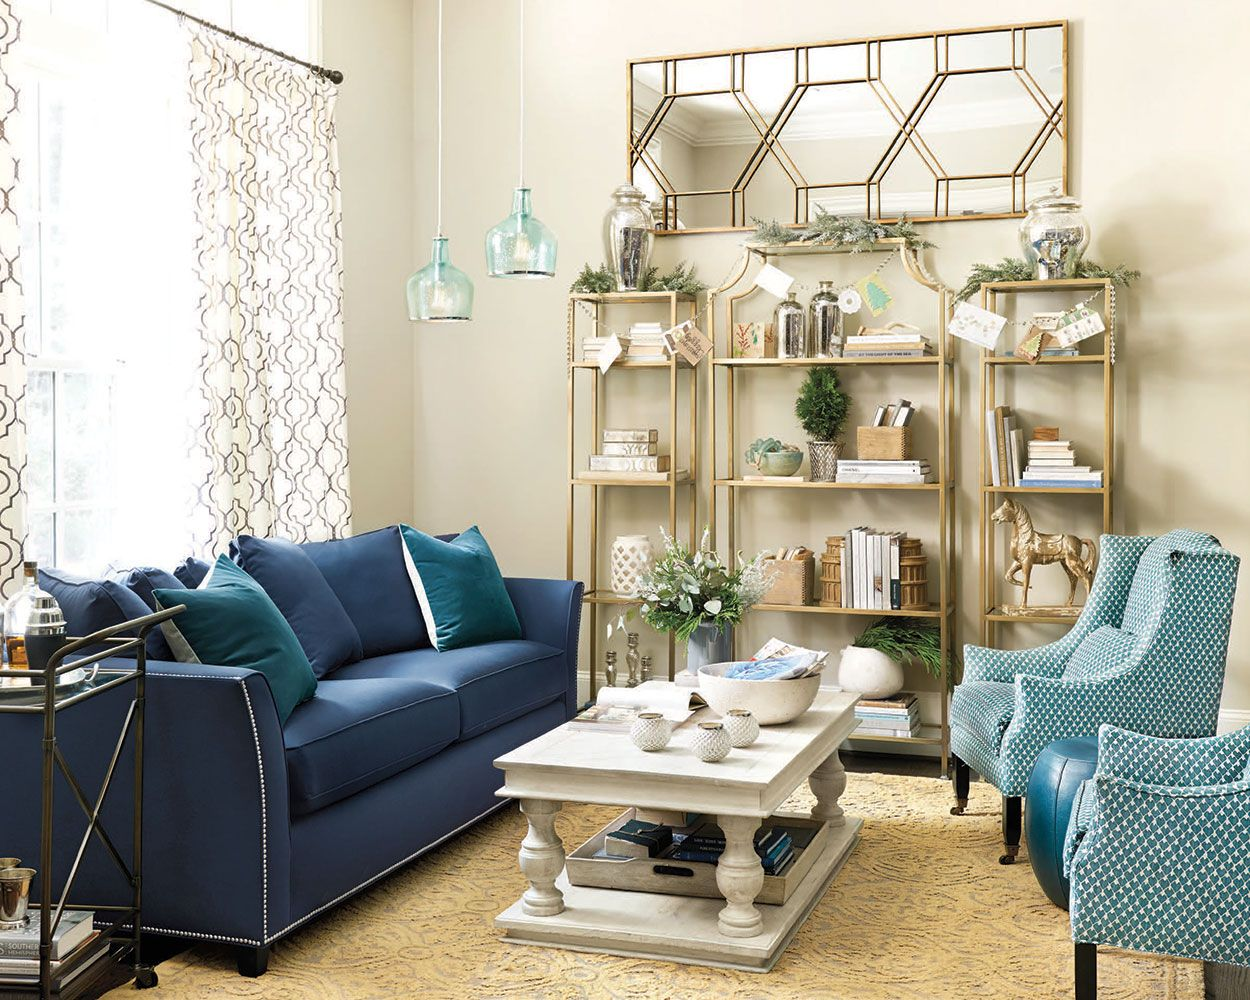 Living Rooms Ideas For Decorating Turquoise Living Room Decor Decor Living Room Turquoise #turquoise #living #room #chairs